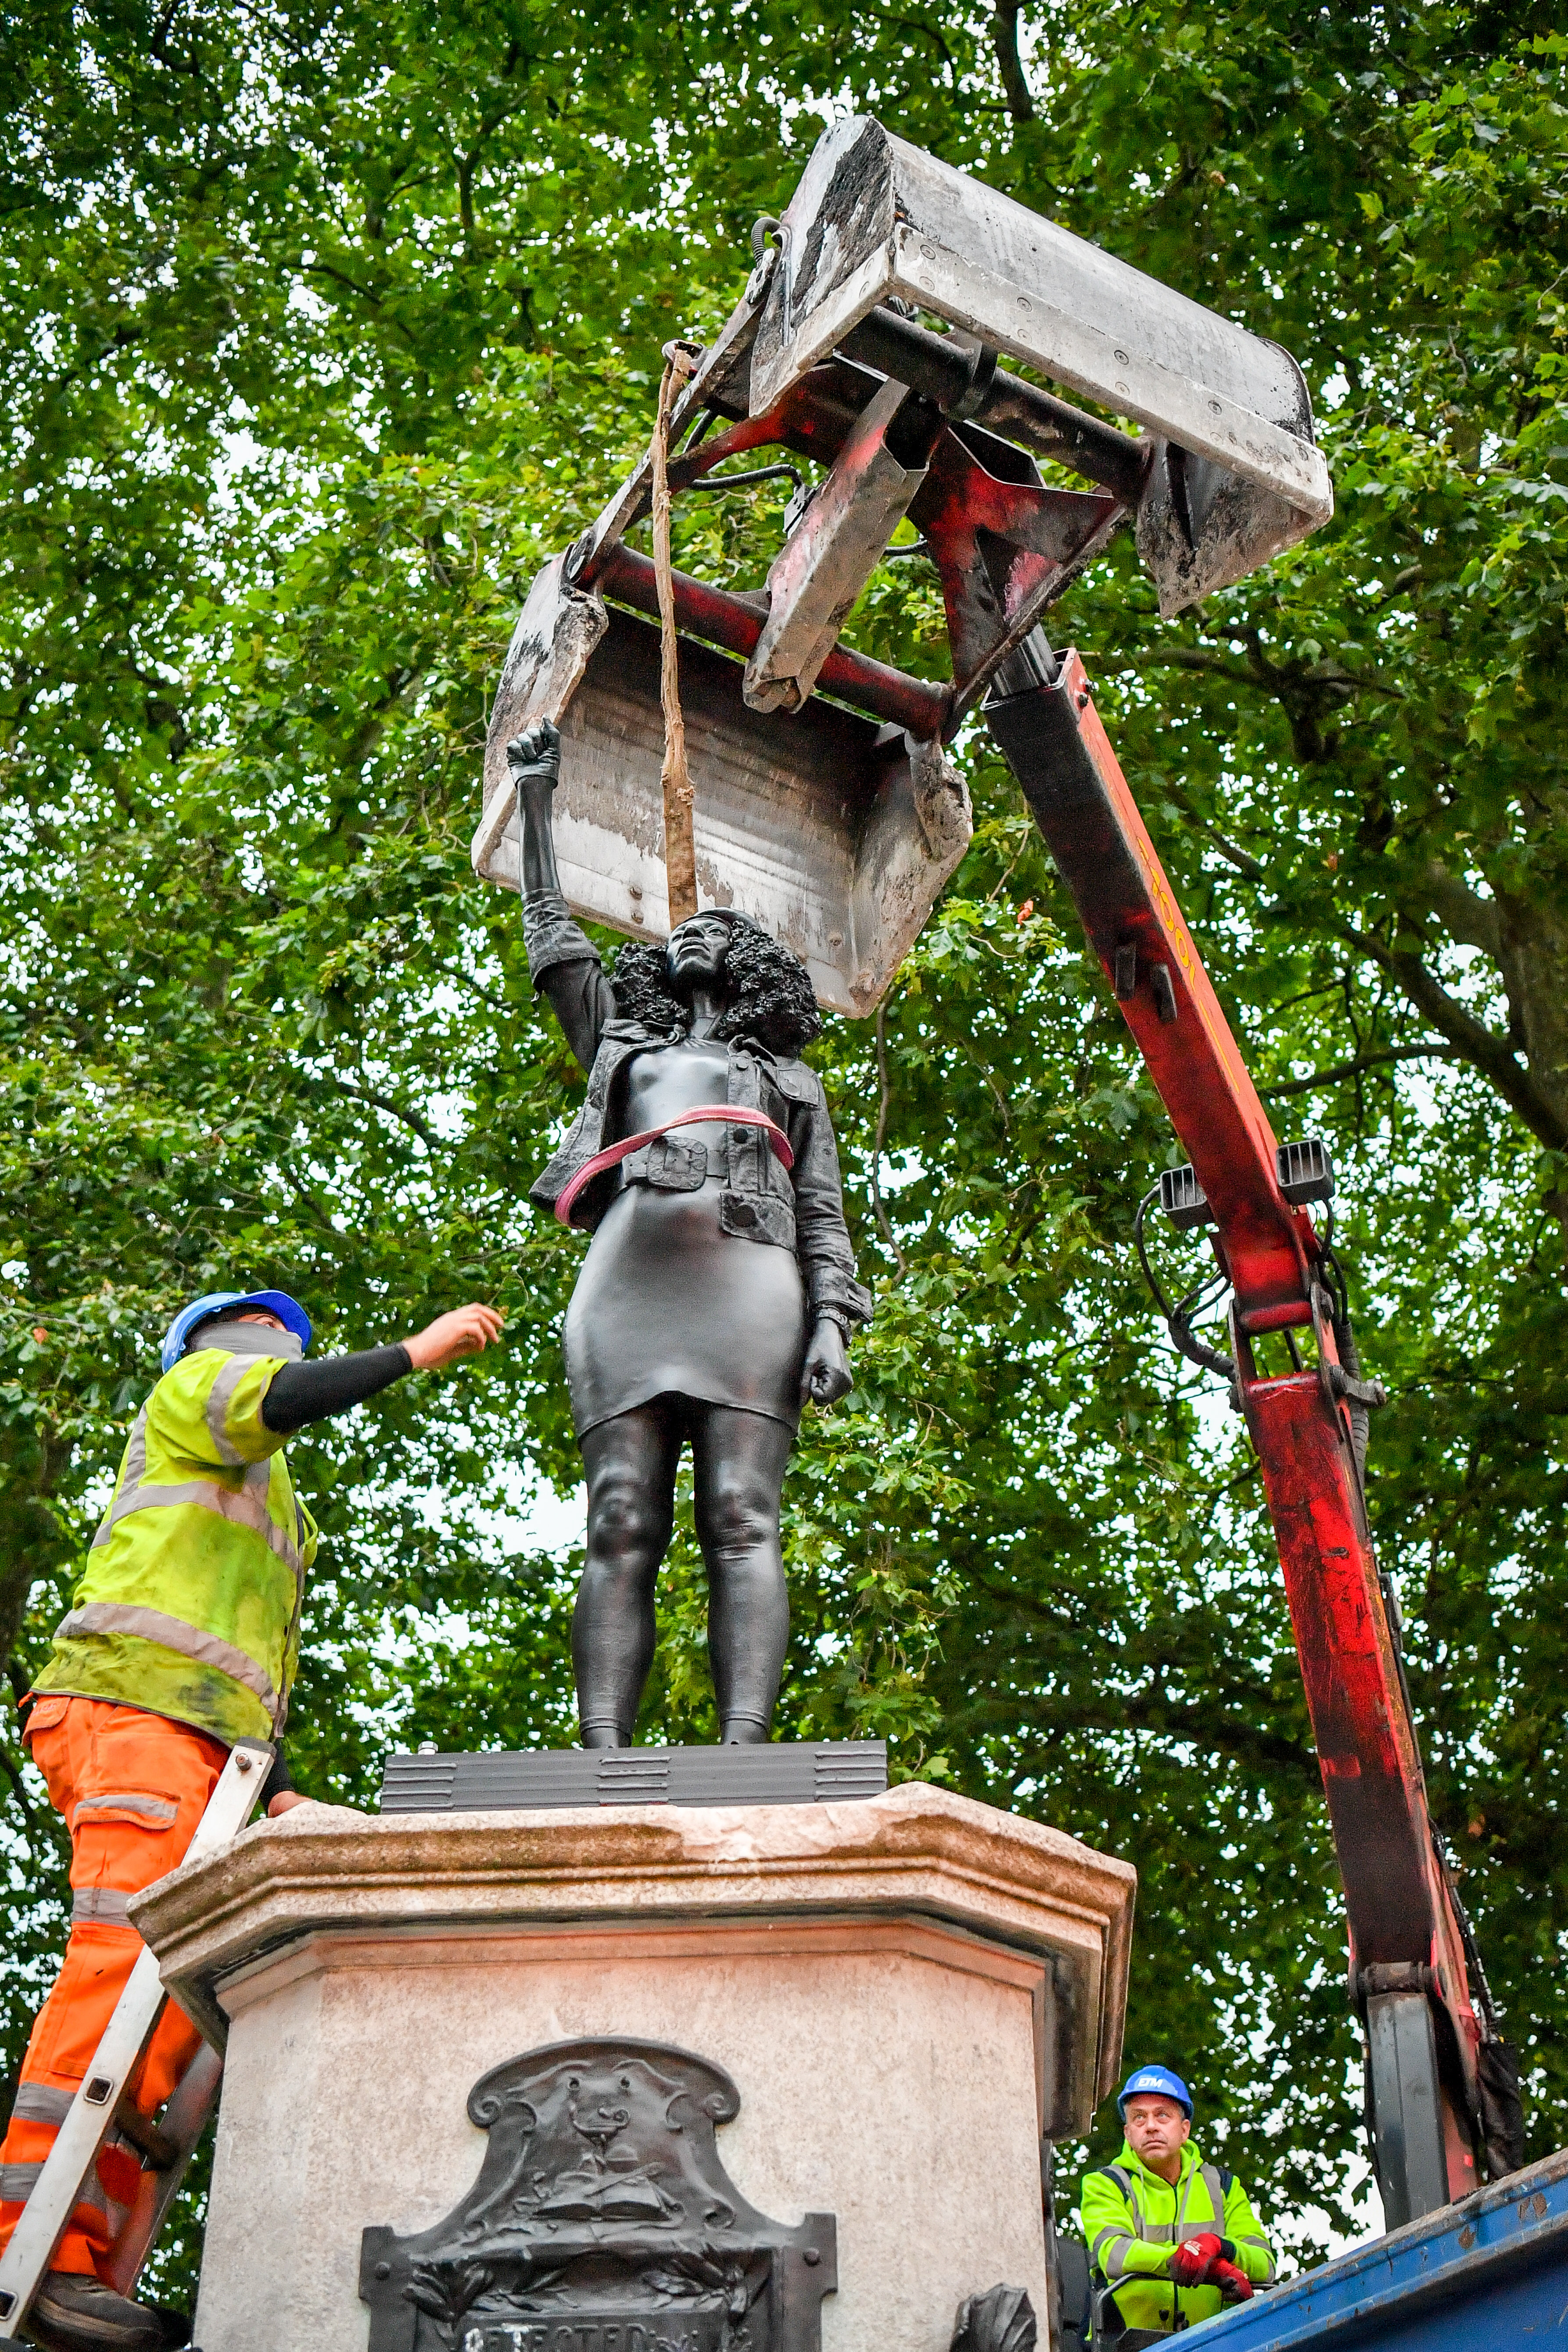 Contractors use ropes to secure A Surge of Power (Jen Reid) 2020, by prominent British sculptor Marc Quinn, which has been installed in Bristol on the site of the fallen statue of the slave trader Edward Colston, as they prepare to remove and load it into into a recycling and skip hire lorry. (Photo by Ben Birchall/PA Images via Getty Images)